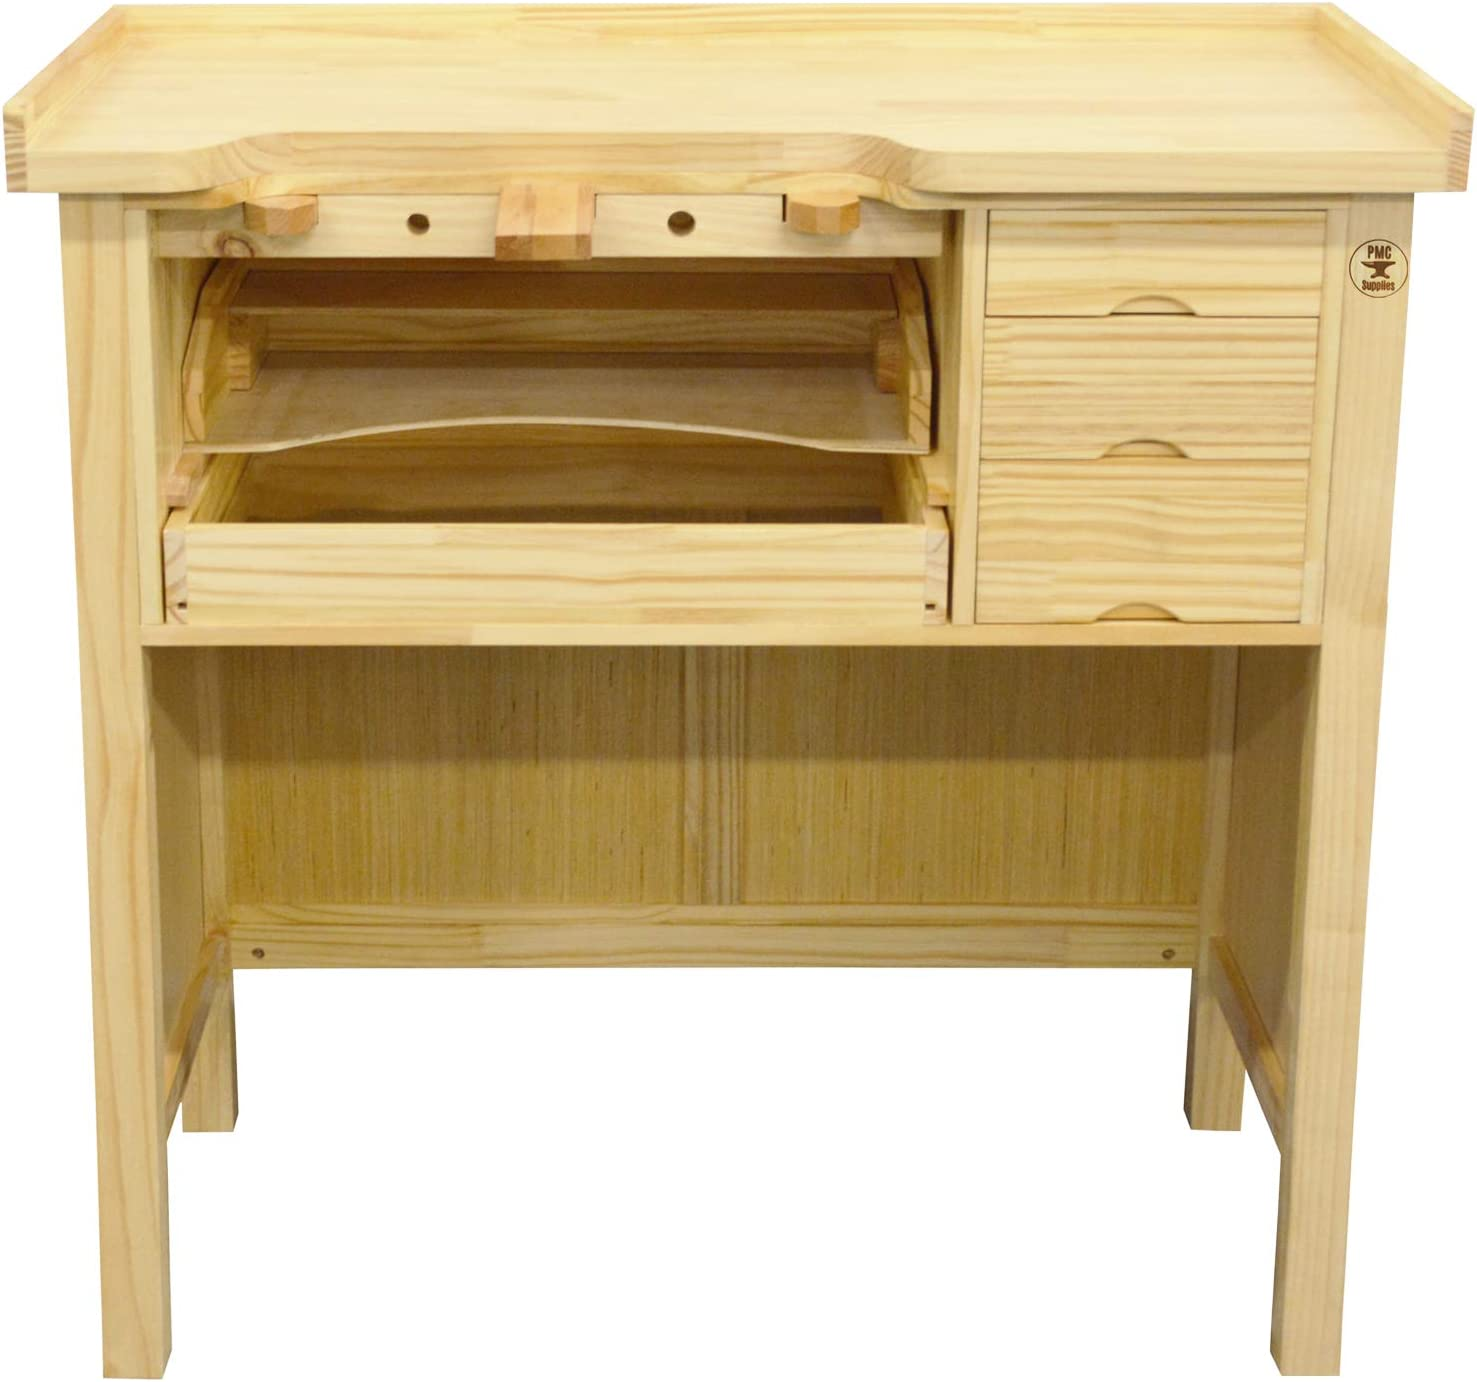 Deluxe Solid Wooden Jewelers Bench Workbench Station